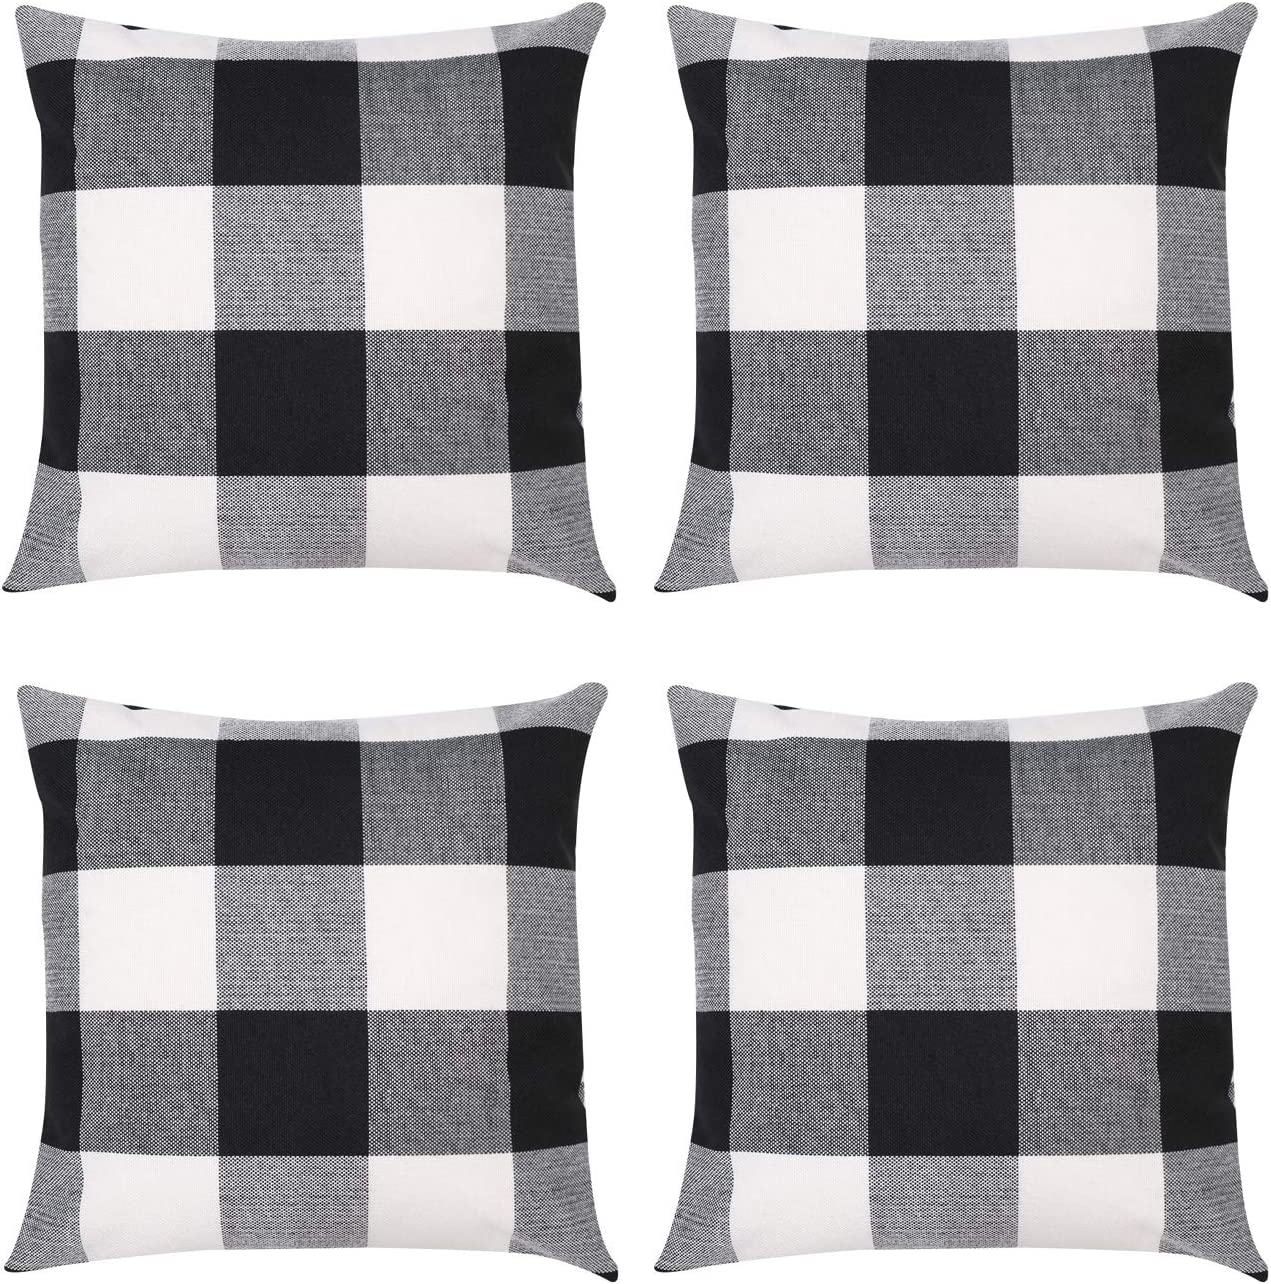 ZhangShi Set of 4 Buffalo Check Plaid Throw Pillow Covers Black and White, 18 x 18 Inches Farmhouse Decorative Square Pillow Cushion Cover Case for Home Sofa Bedroom Car Decor